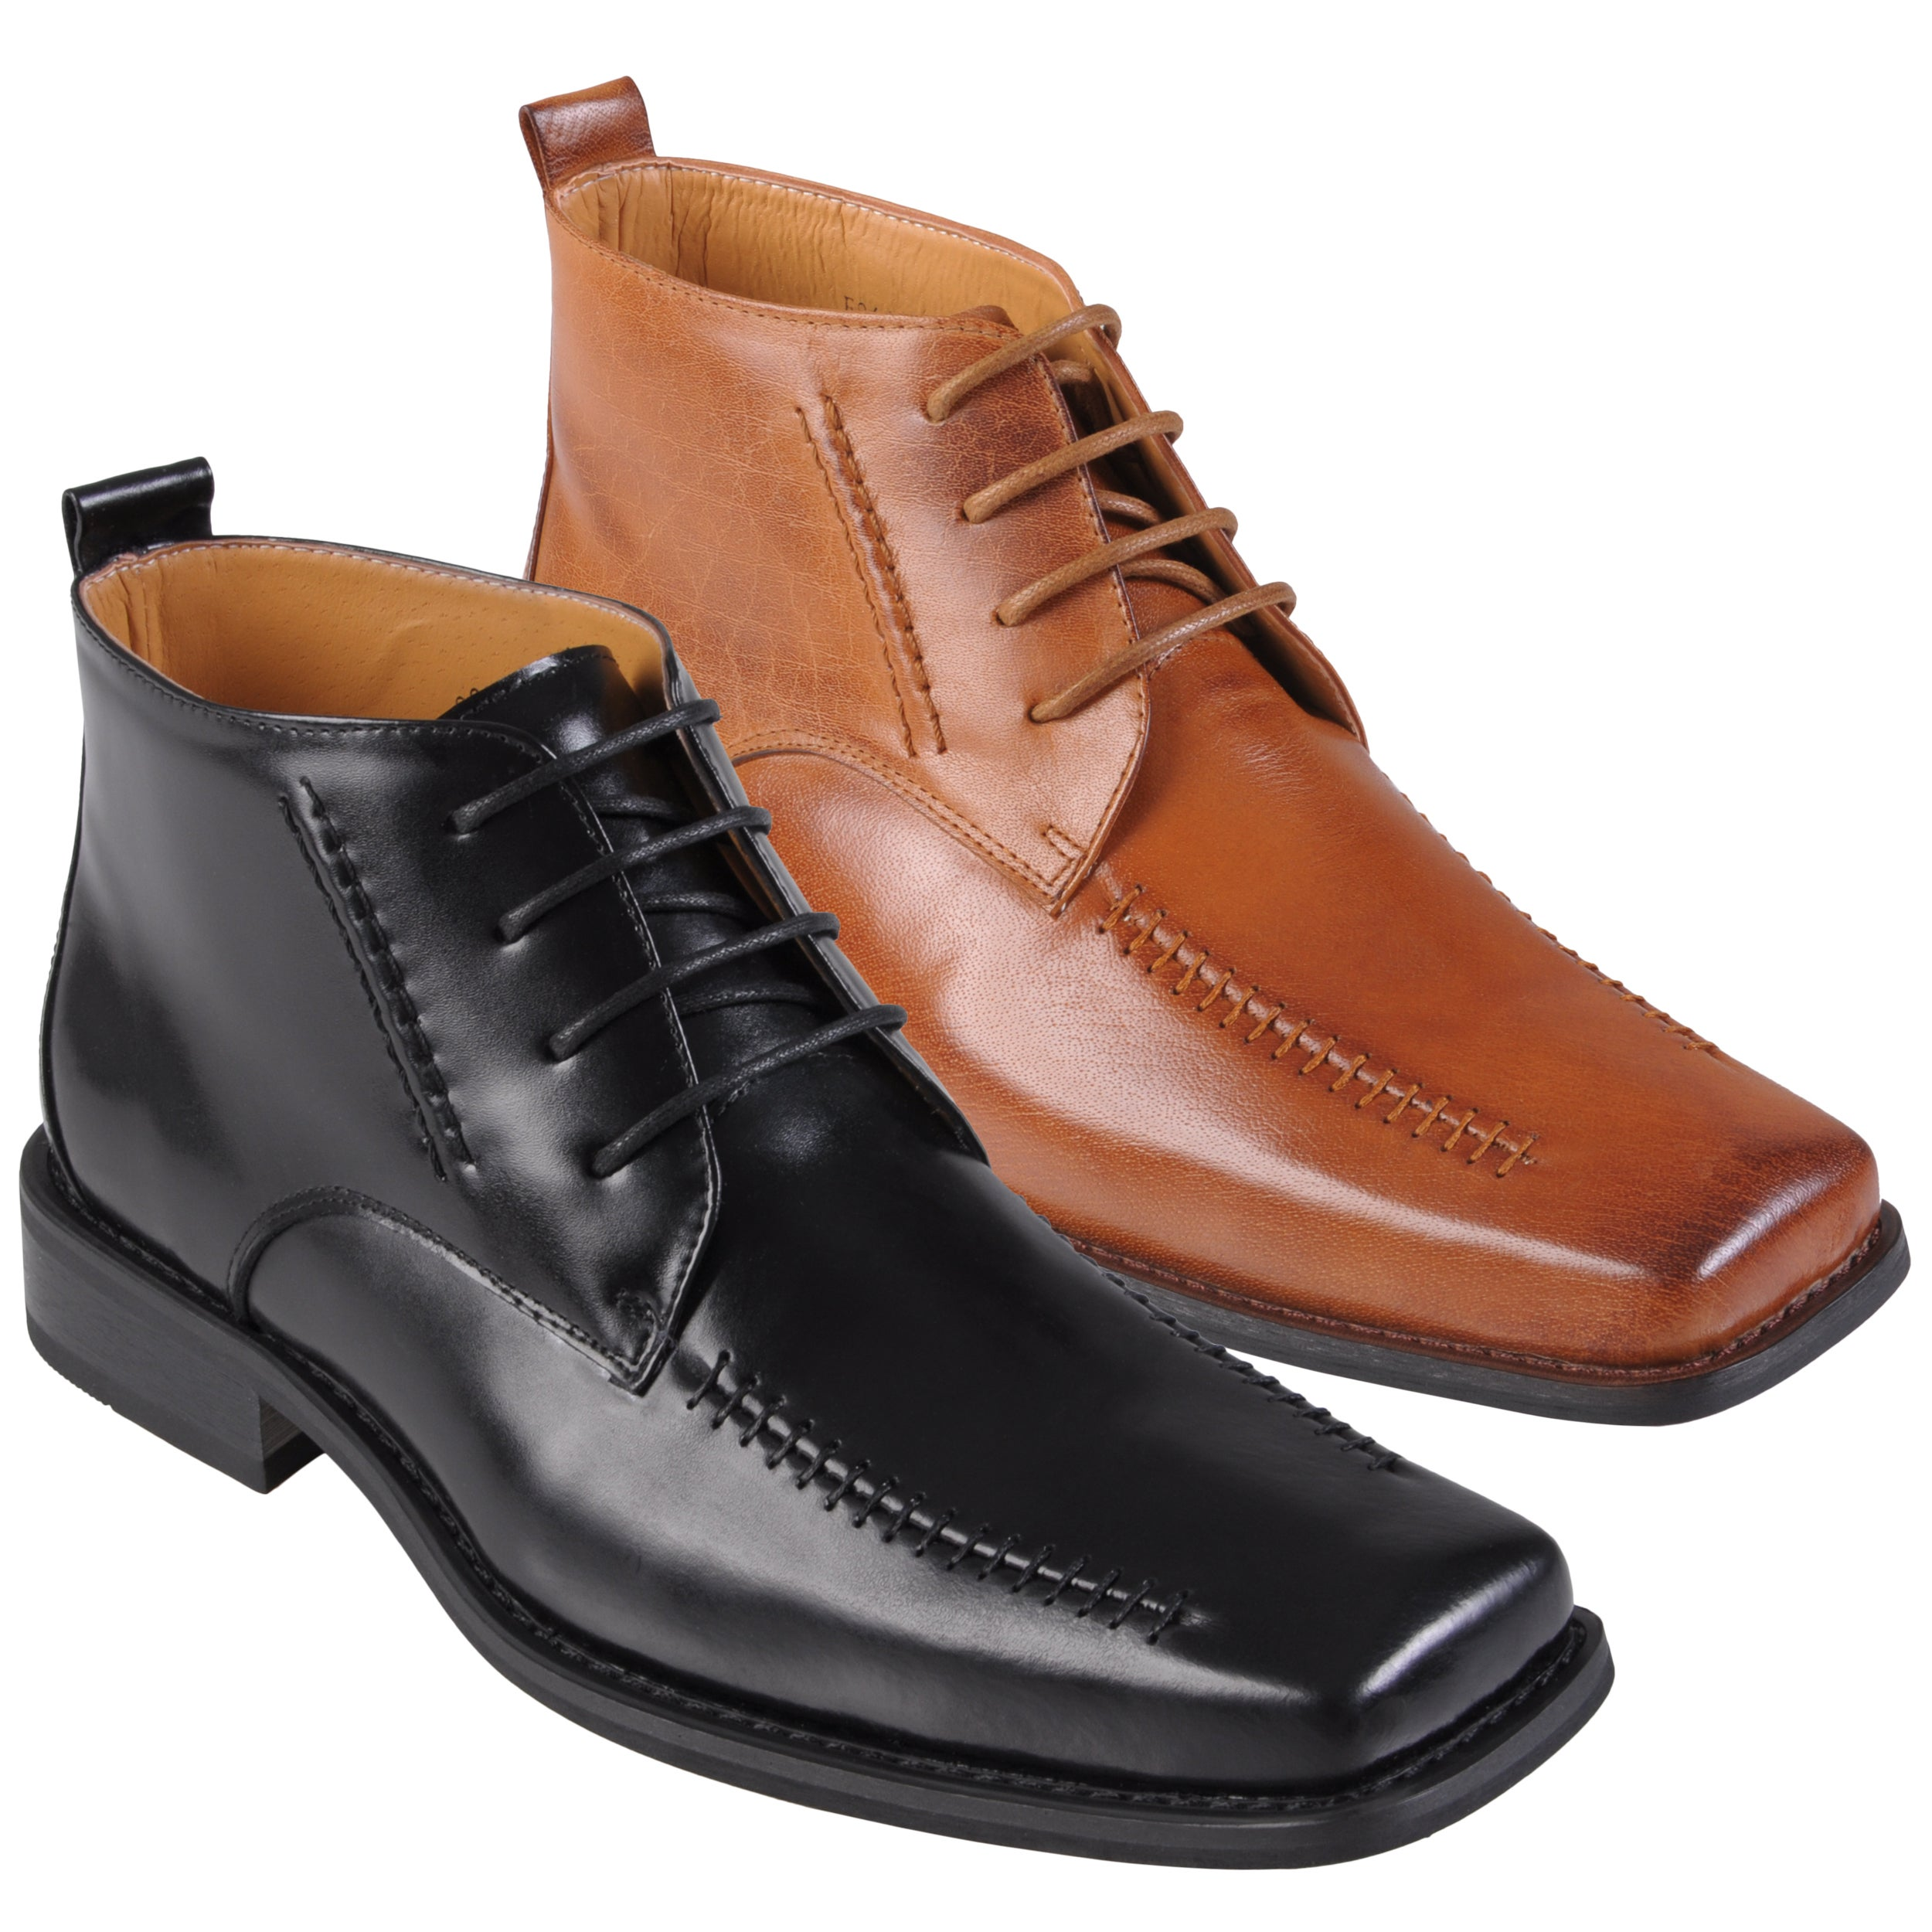 Oxford & Finch Men's Stitching Detail Leather Shoes